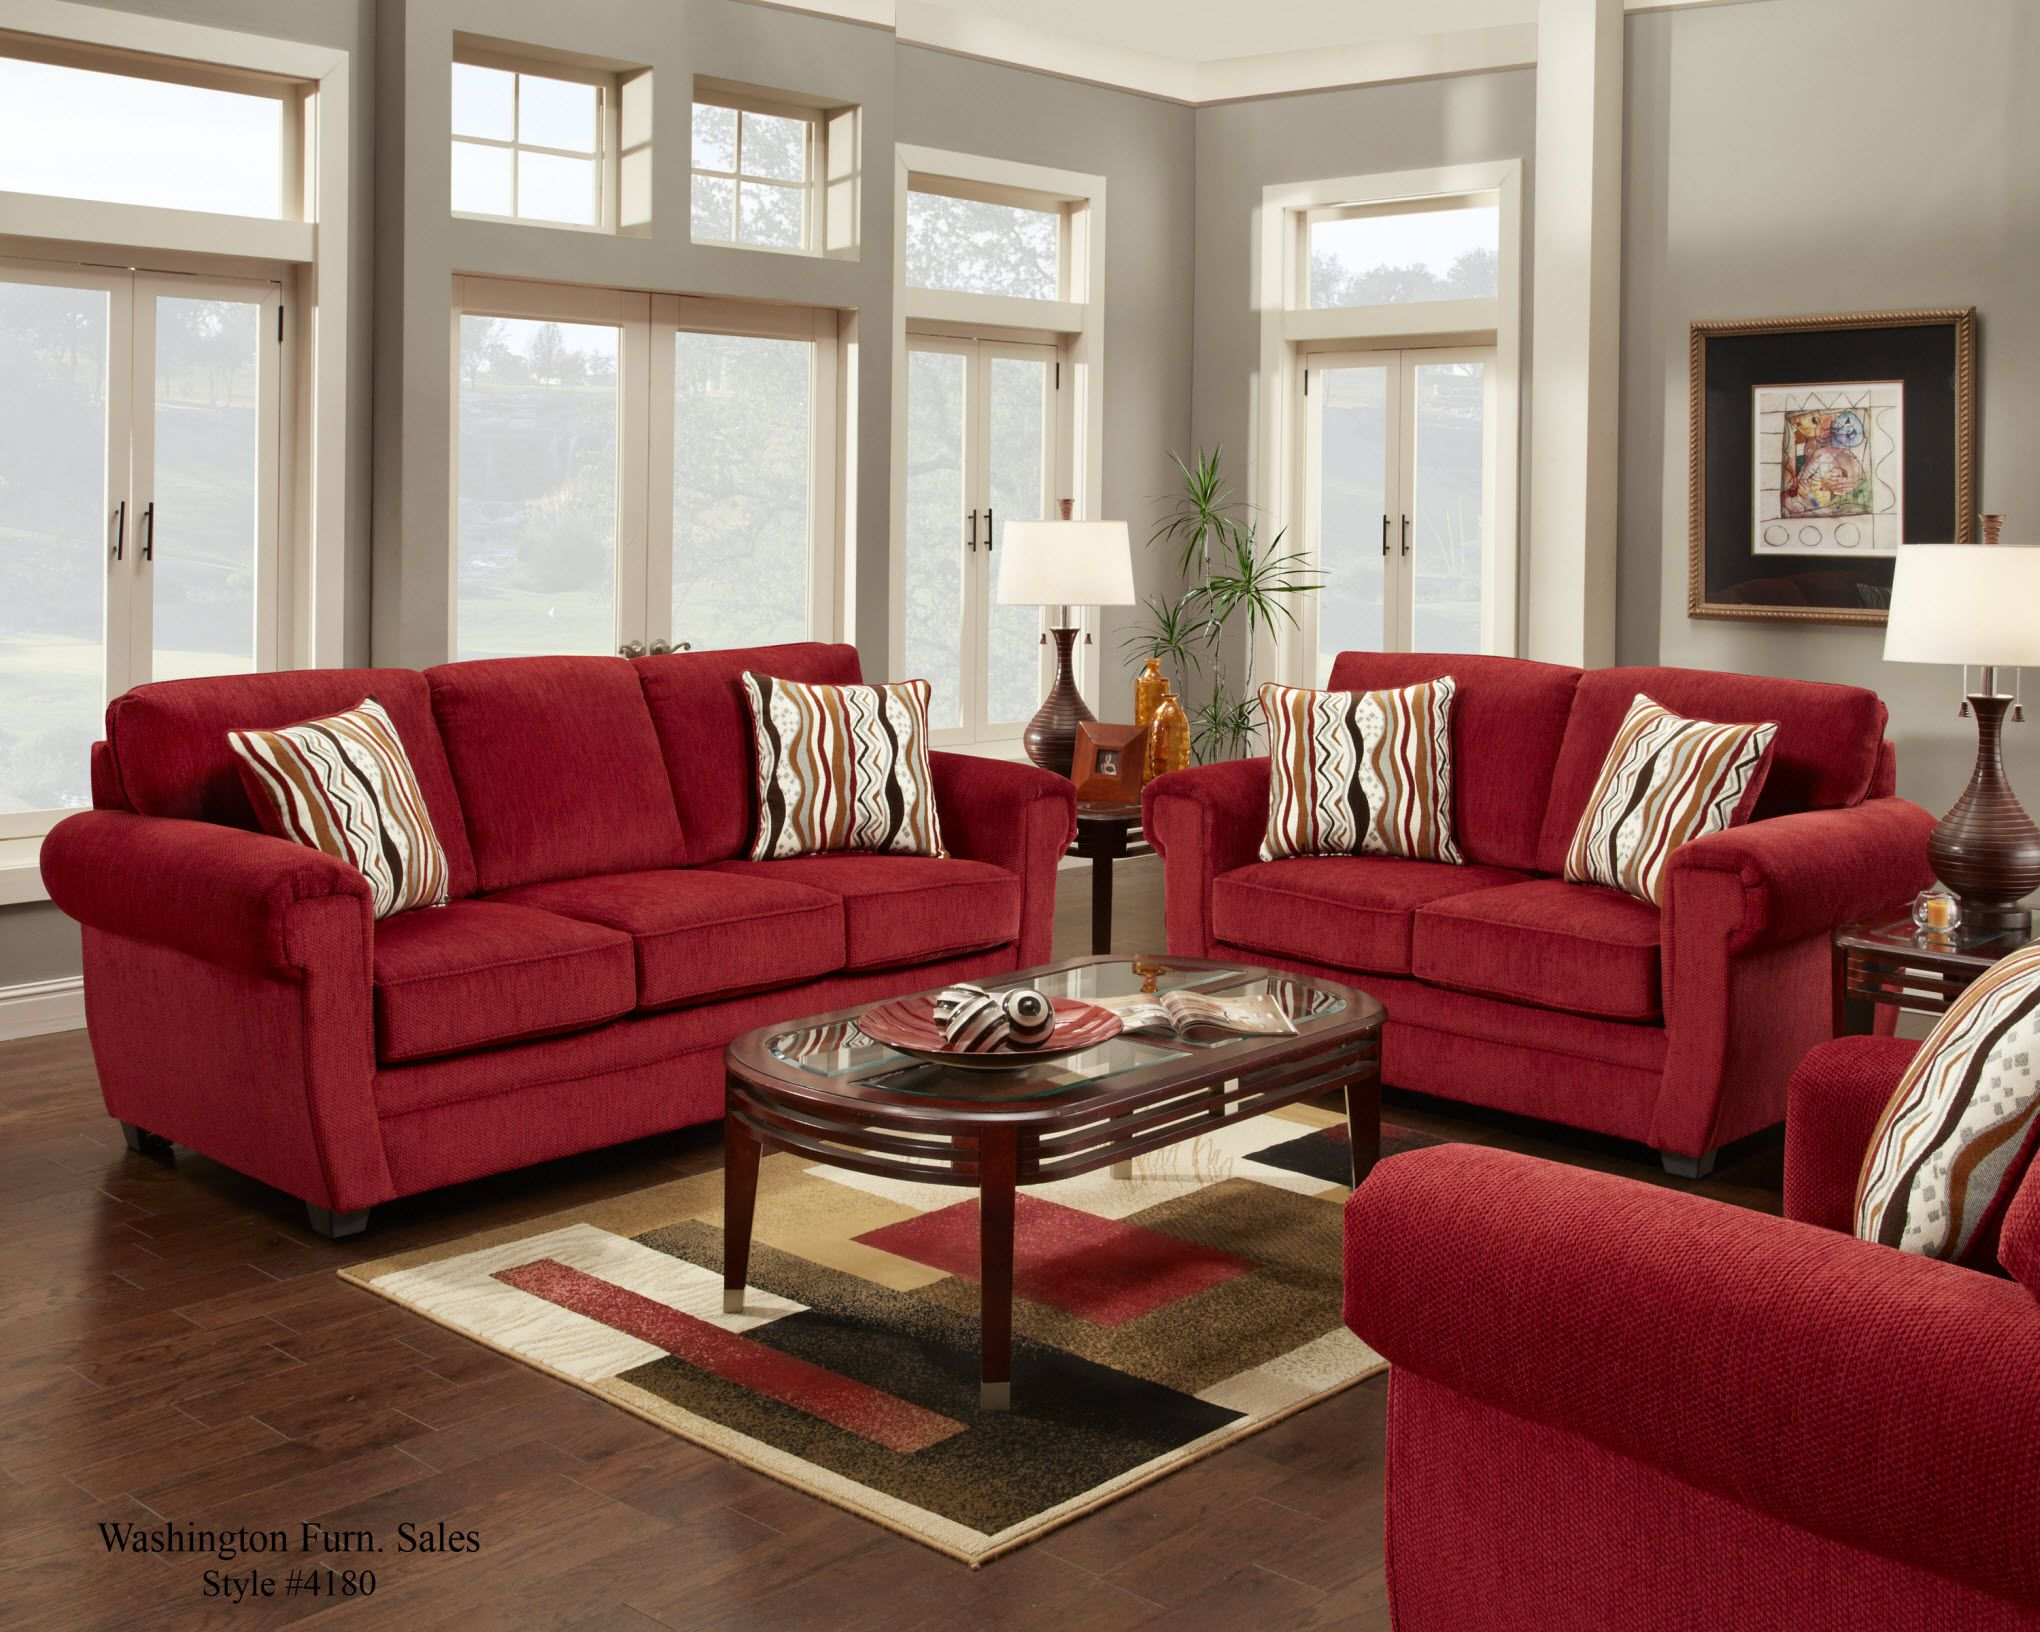 53 Cozy Small Living Room Interior Designs Dark brown sofas